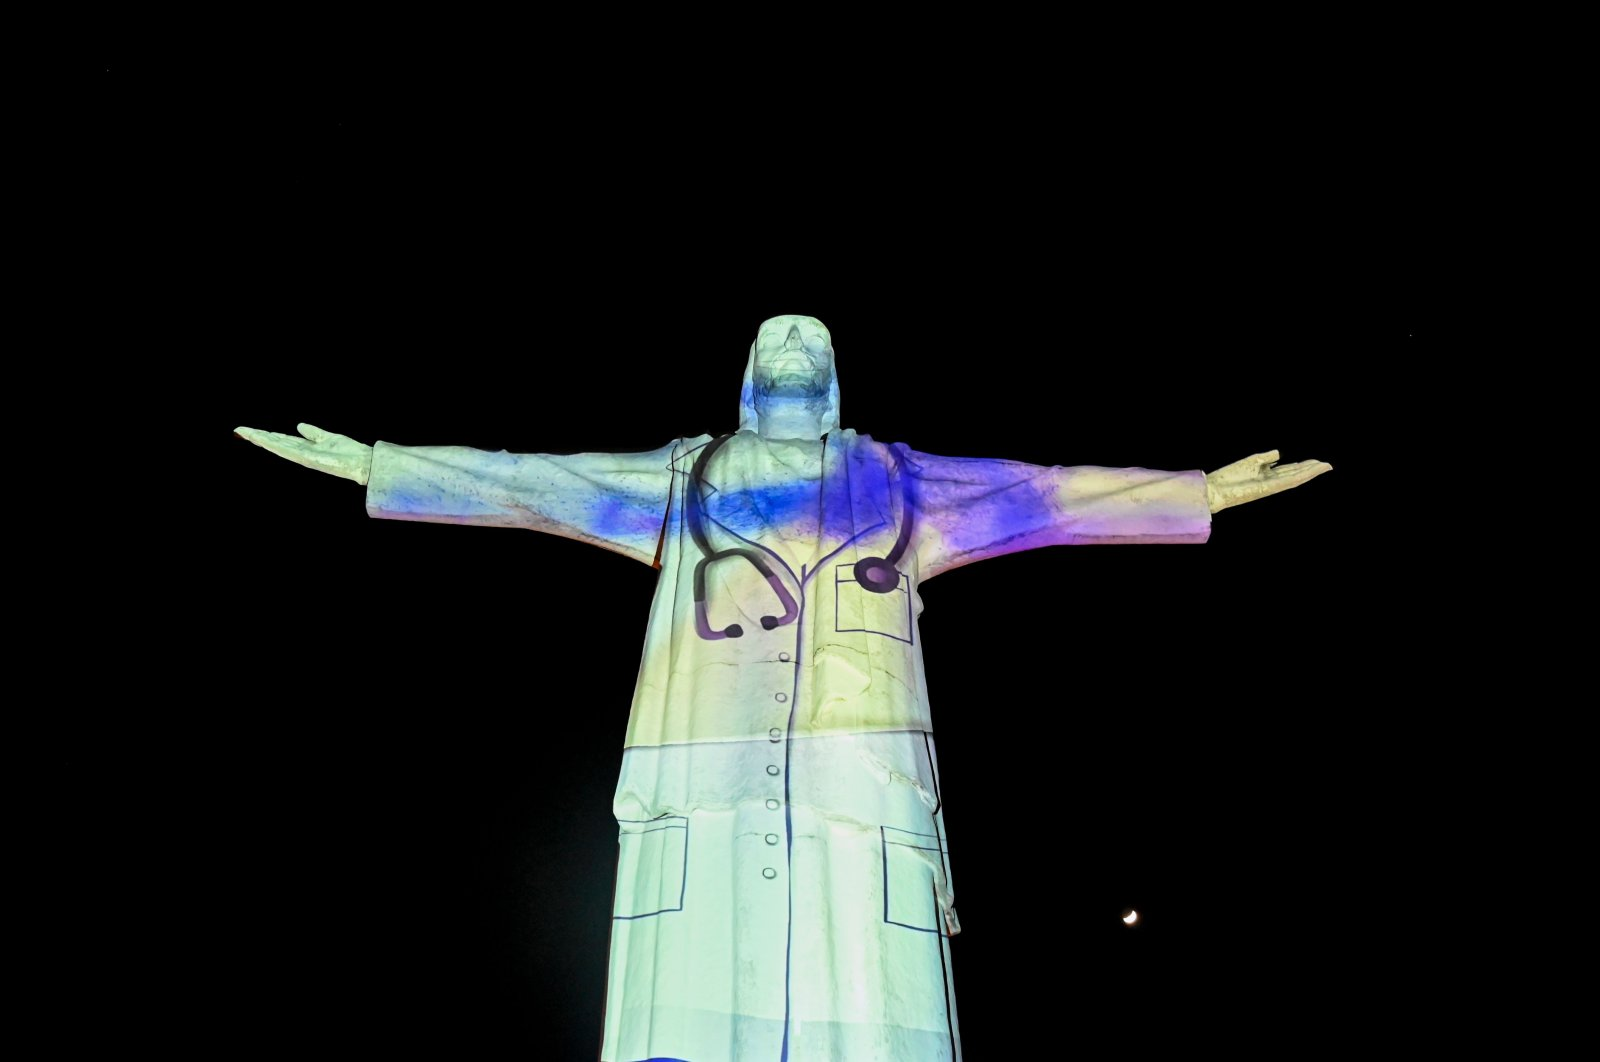 The image of a doctor is projected on the statue of Cristo Rey monument in Cali, Colombia, during celebrations for the 484th anniversary of the city, on July 25, 2020.(AFP Photo)